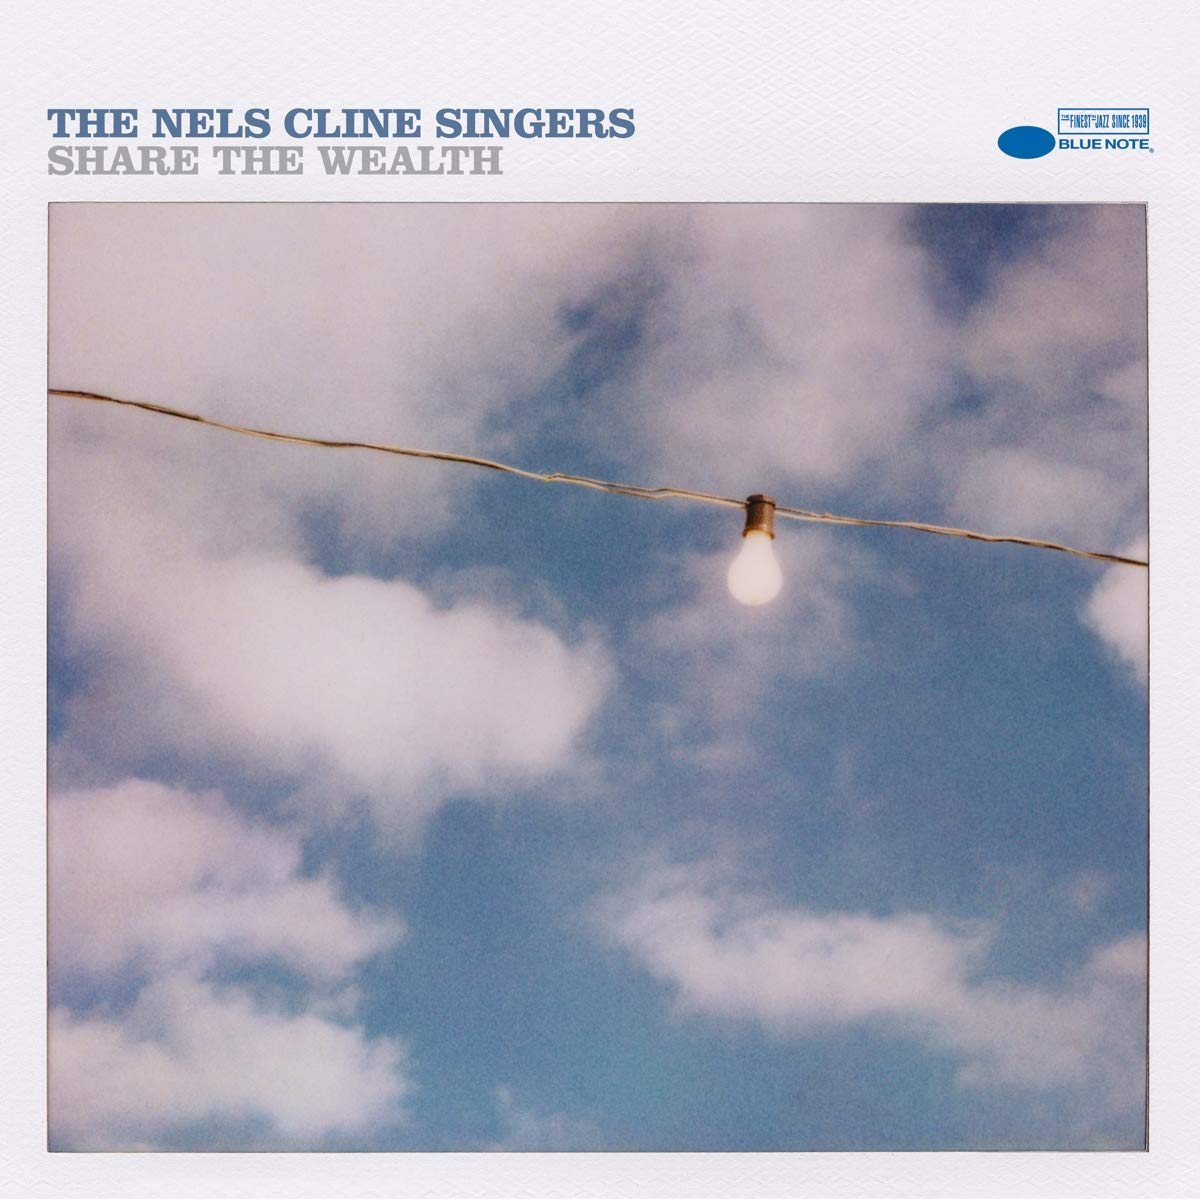 The Nels Cline Singers: Share the Wealth